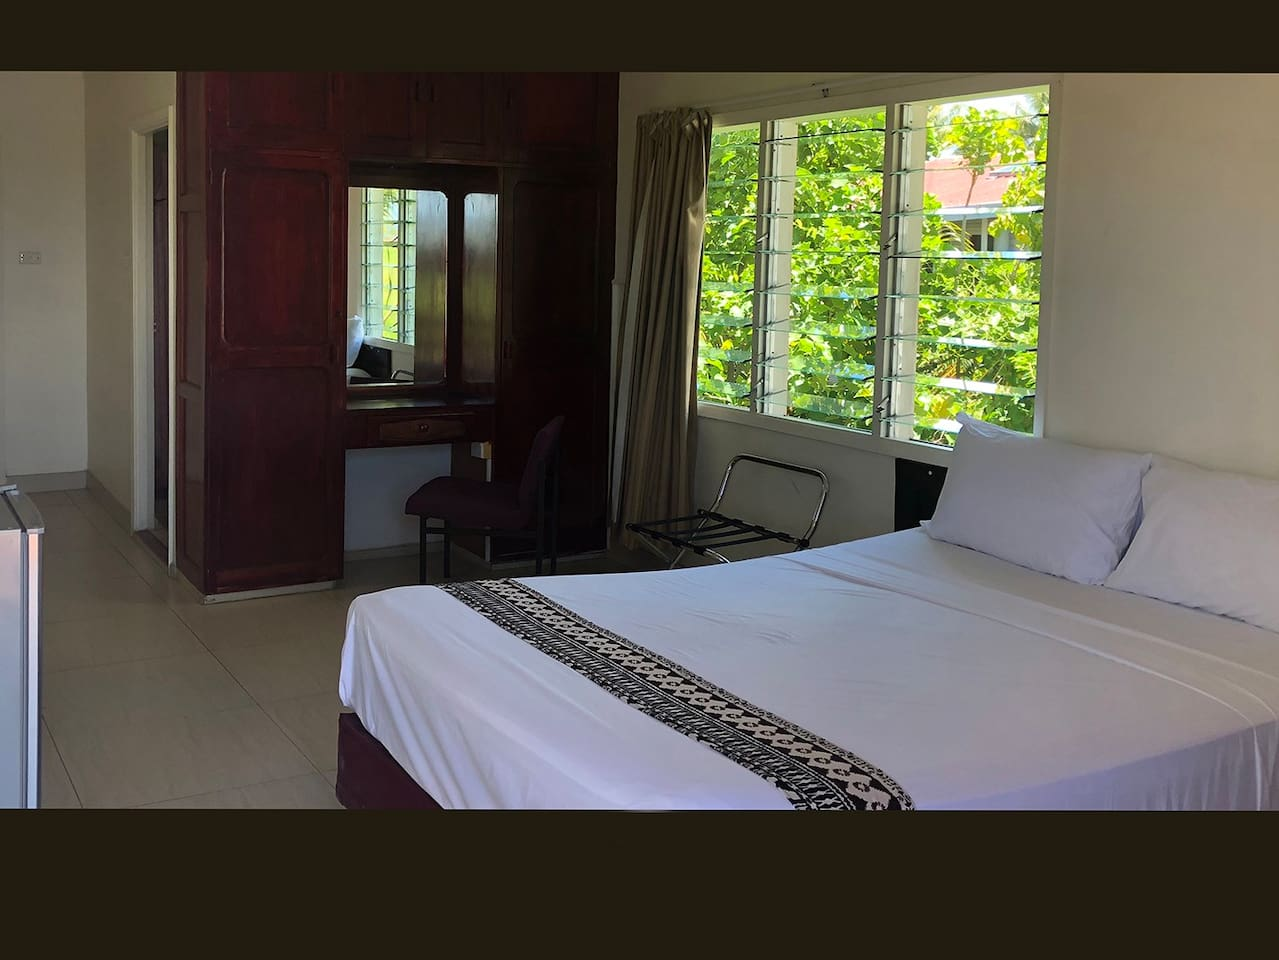 Deluxe room with balcony view